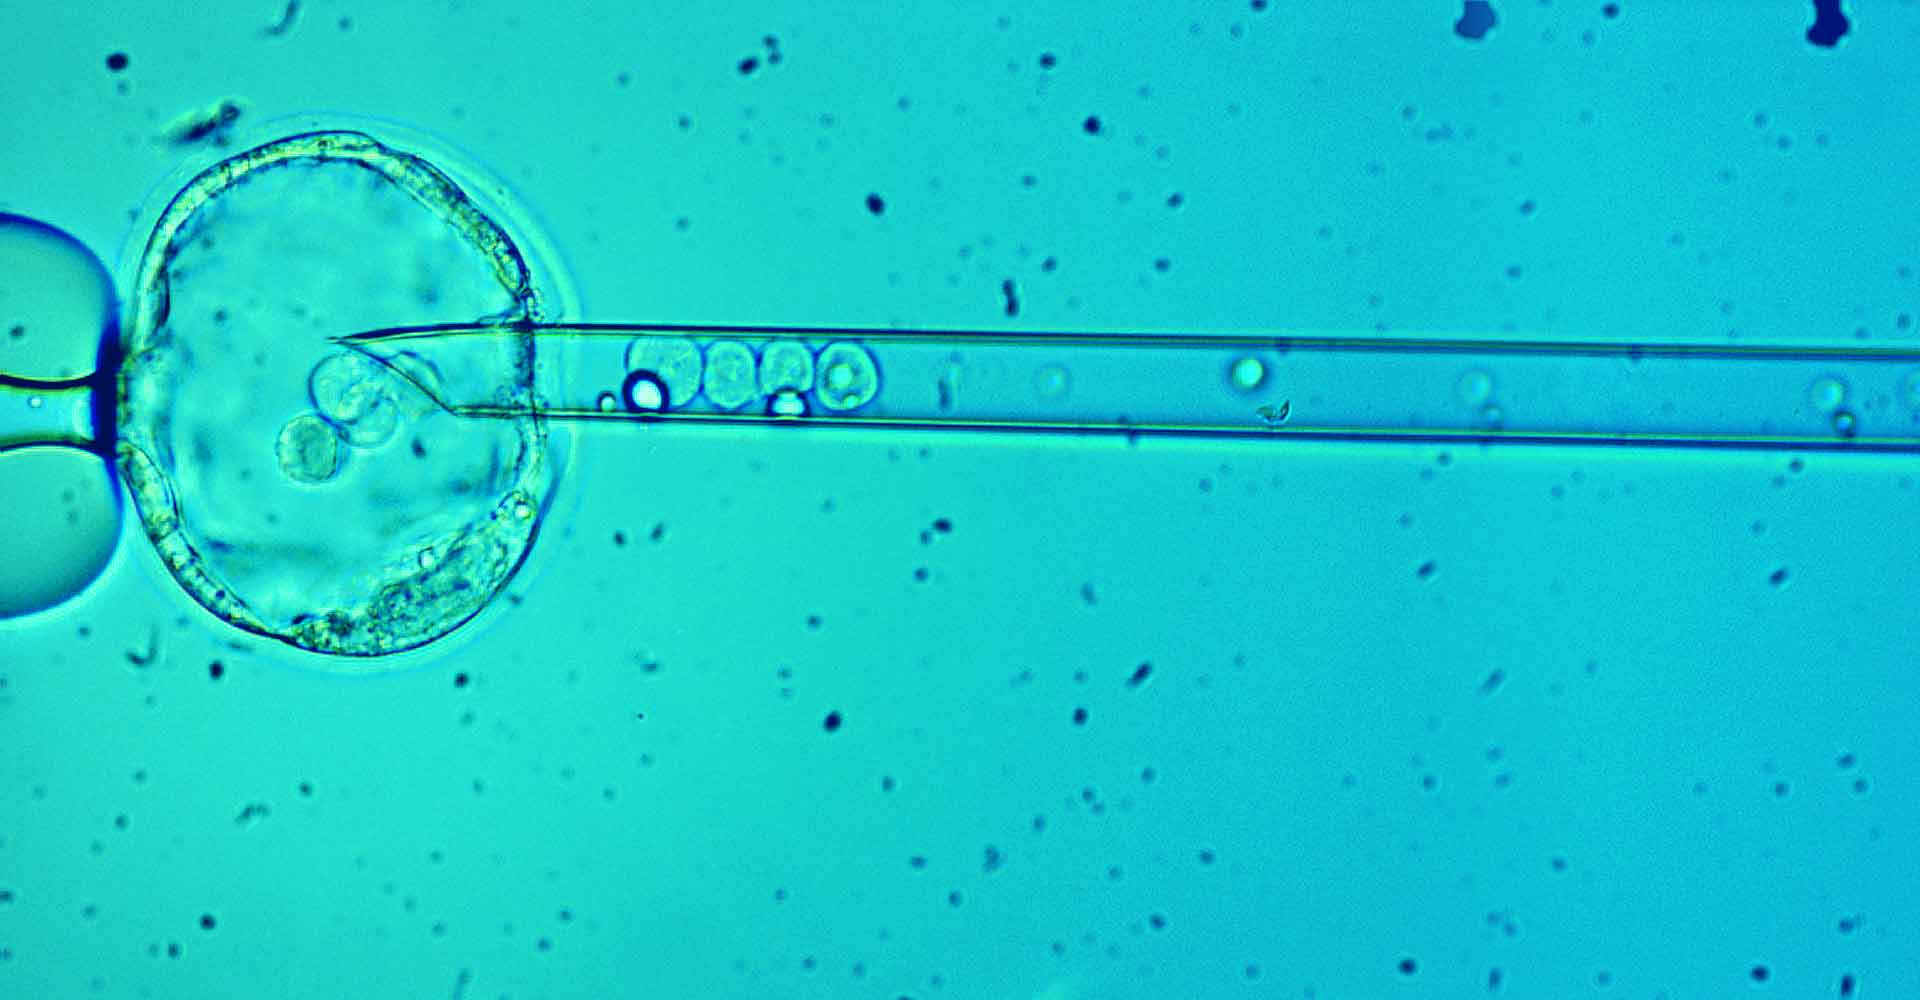 Zoom in of Blastocyst Injection by PolyGene